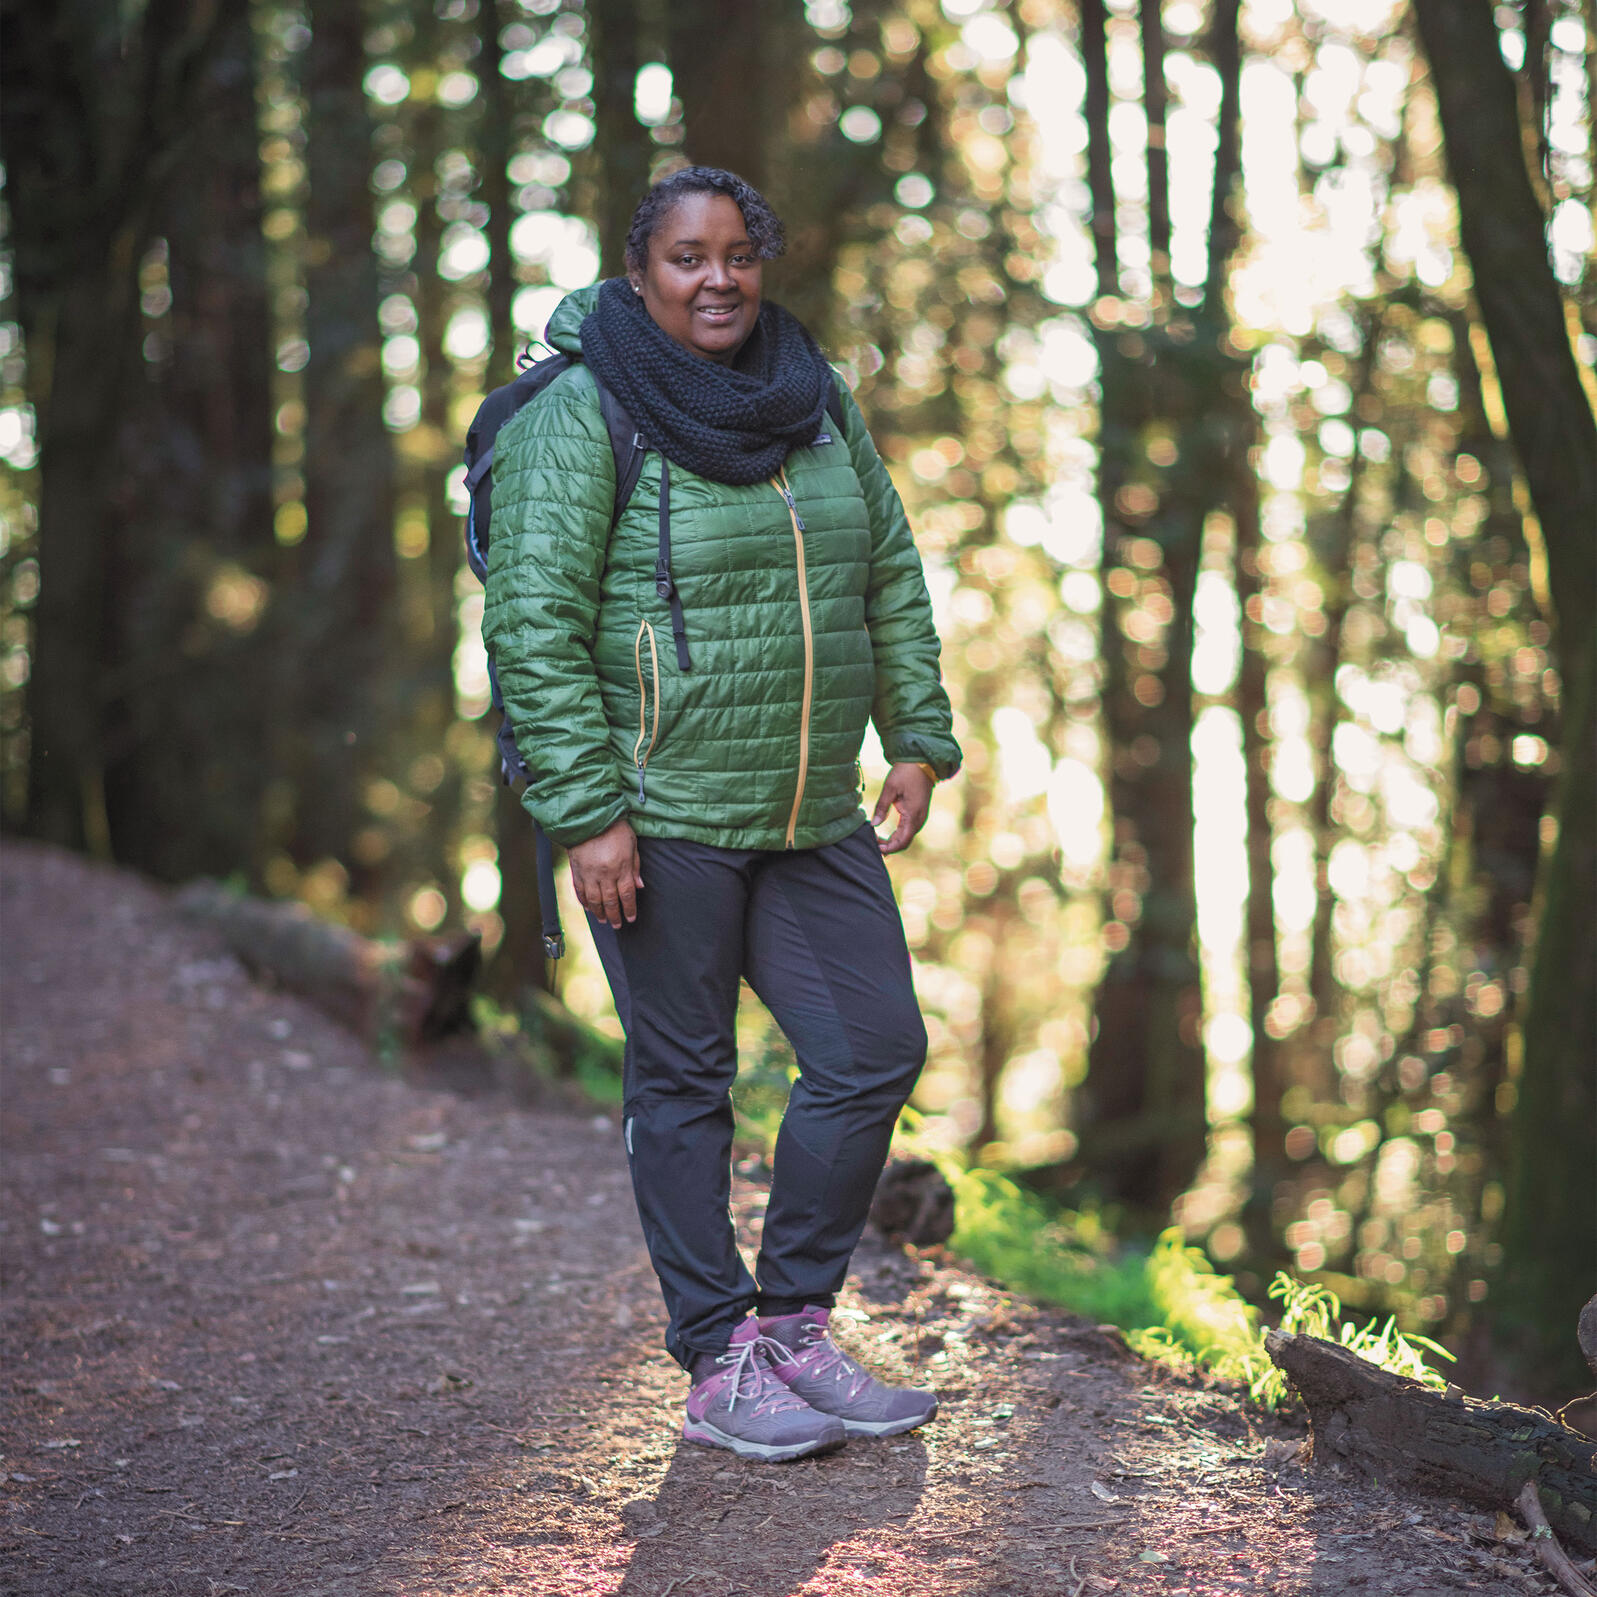 Teresa Baker spends much of her time hiking in parks around the country. But she still feels the pull of the redwoods near her Bay Area home. Victoria Reeder